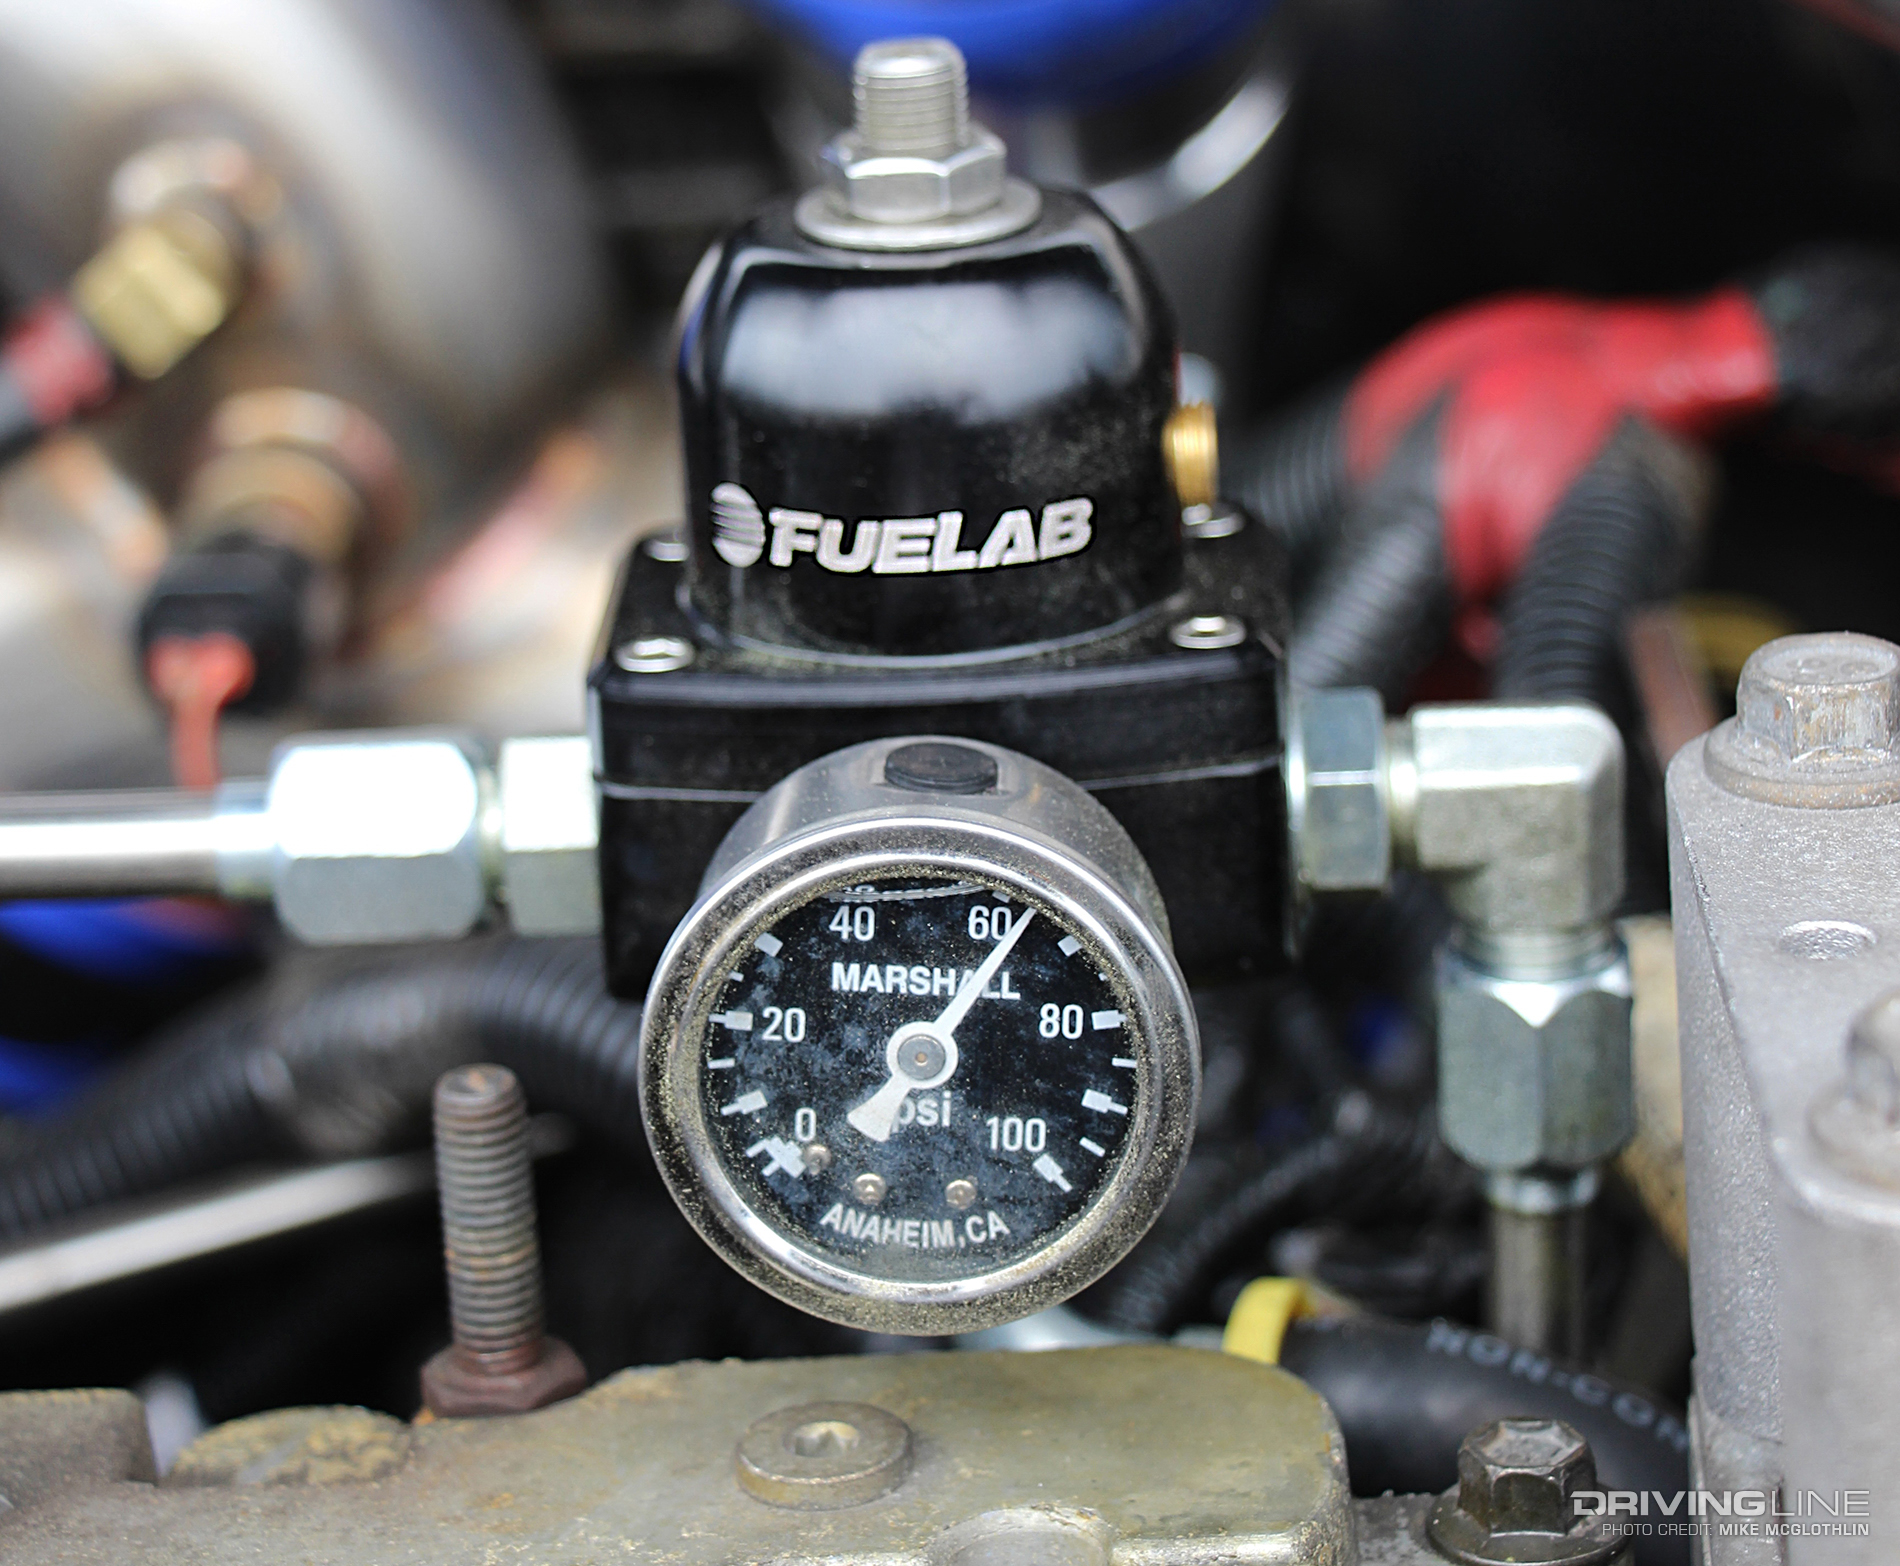 Performance Diesel Injection >> Aftermarket Diesel Lift Pumps: The Catalyst for Making Horsepower | DrivingLine